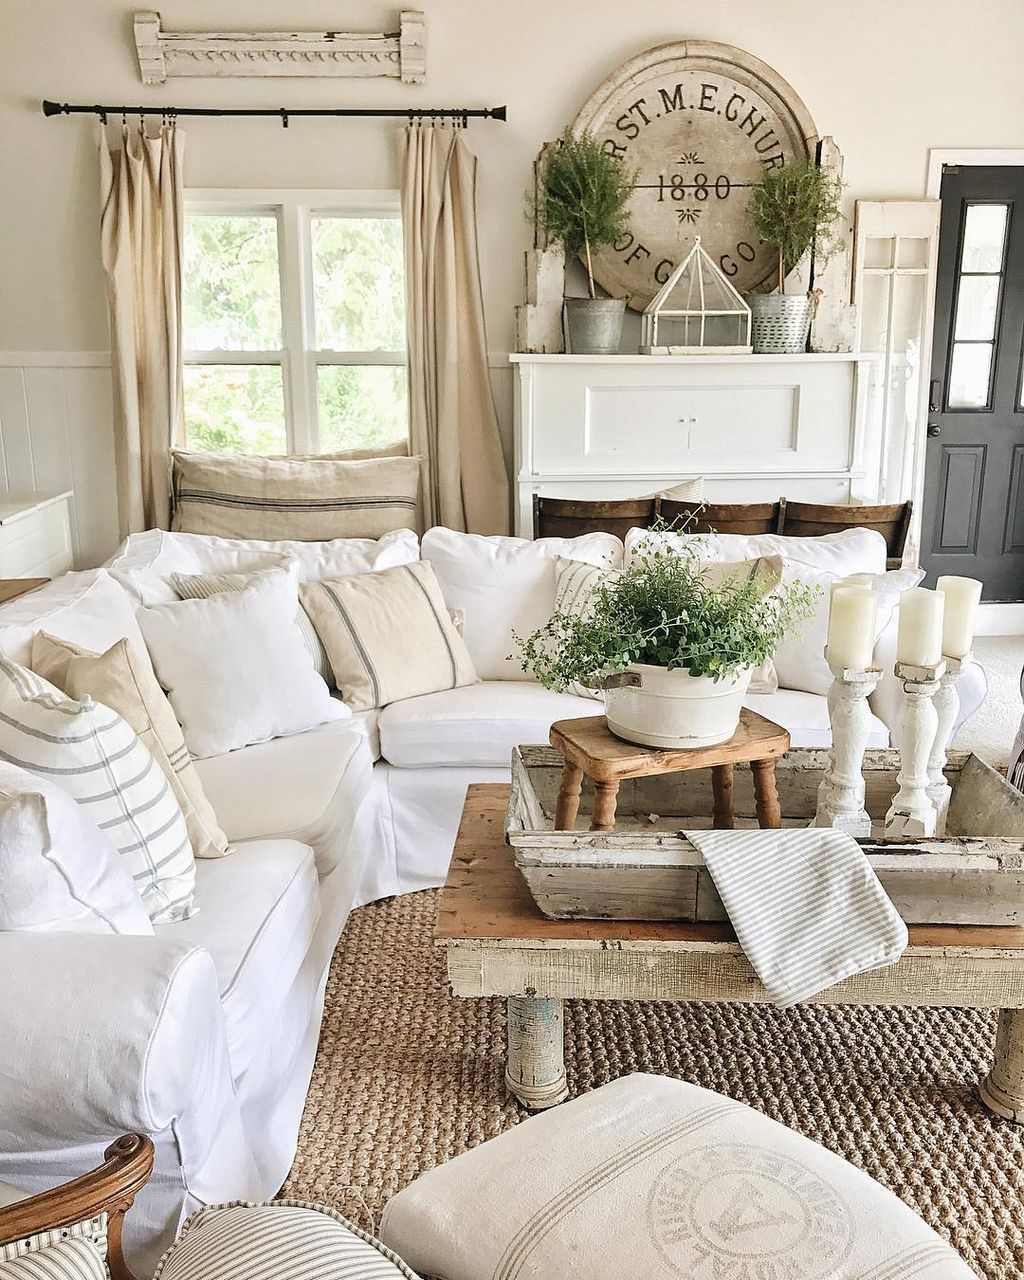 Top 11 Incredible Cozy And Rustic Chic Living Room For: Beautiful White Shabby Chic Living Room Decoration Ideas 1